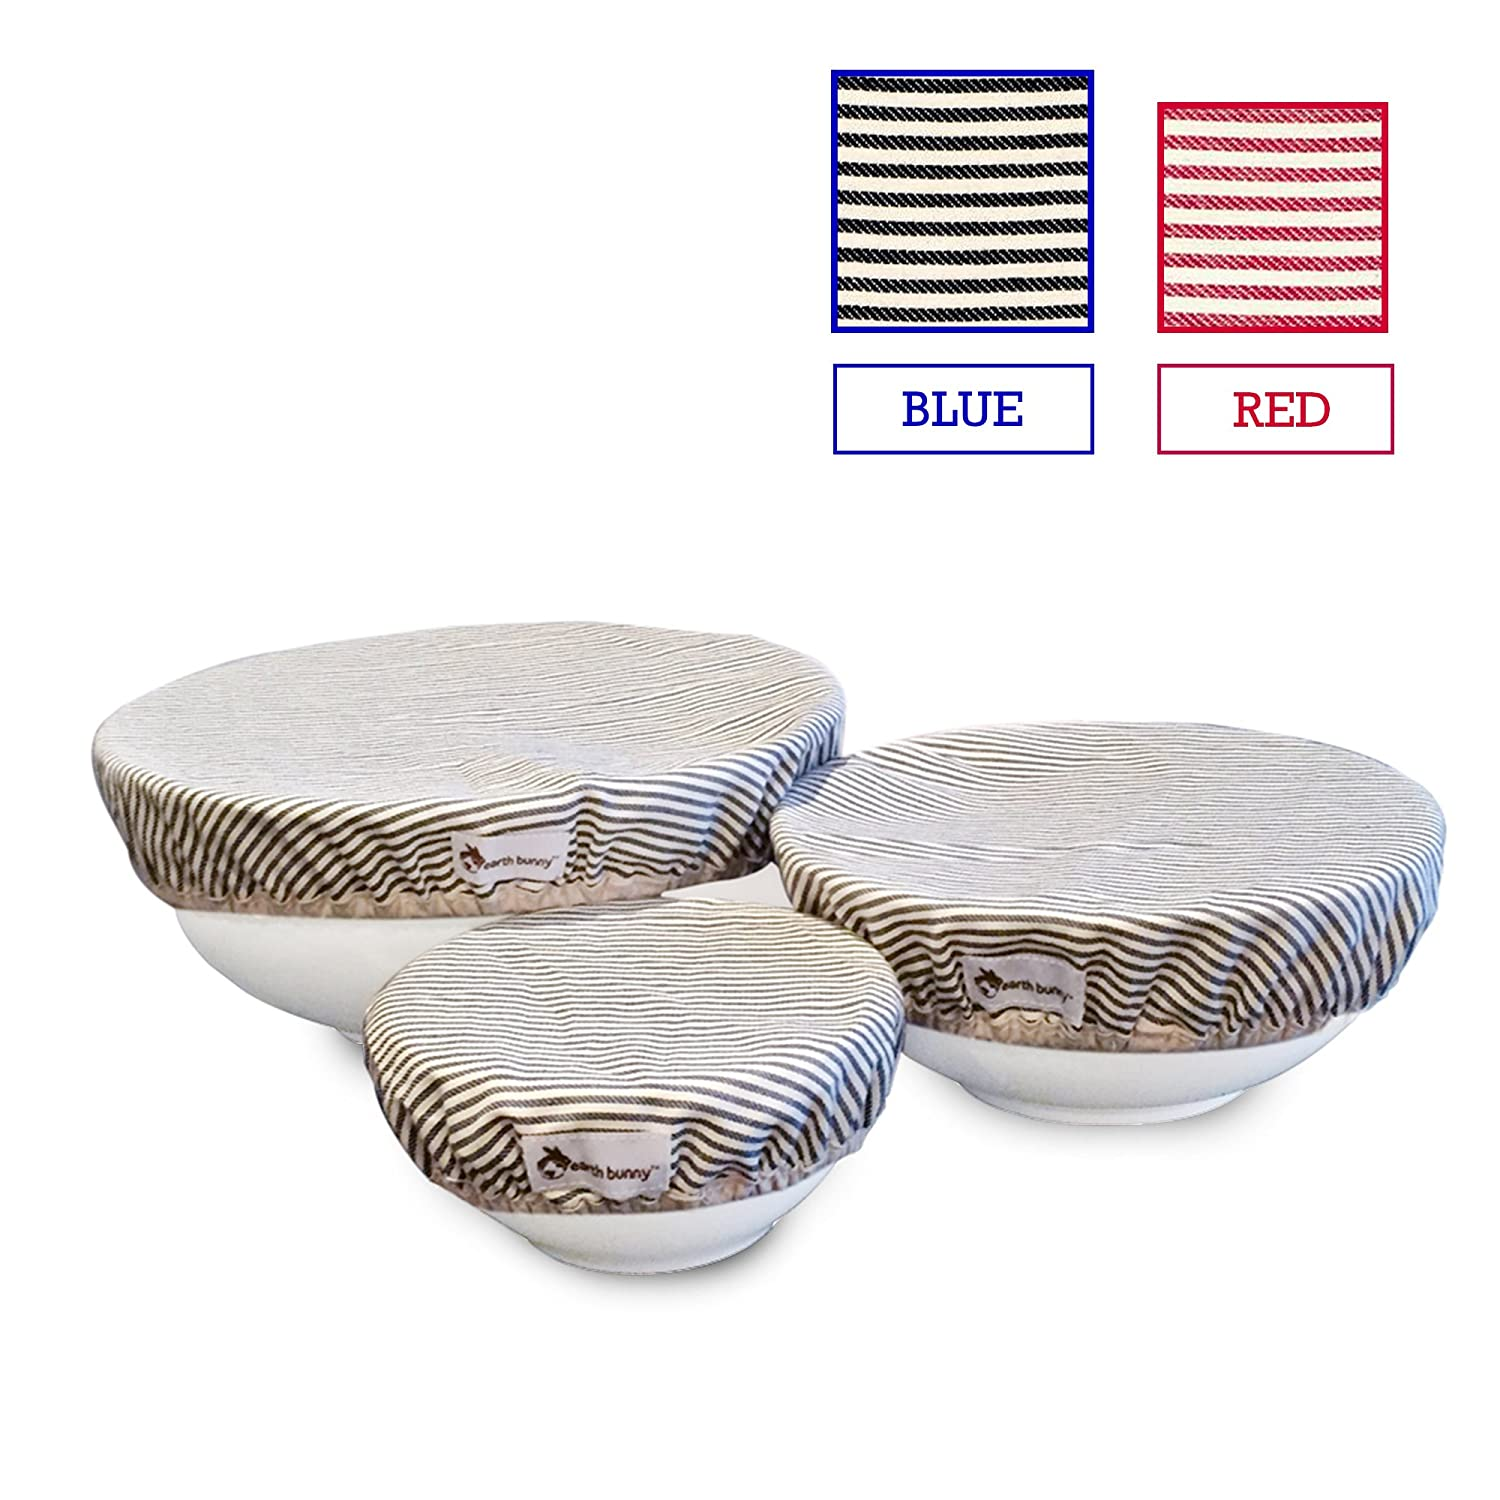 Earth Bunny Fabric Bowl Covers - Blue Stripes   Set of 3 - Small, Medium, Large   100% Cotton Cloth with Elastic Edging   Eco Friendly, Washable and Reusable